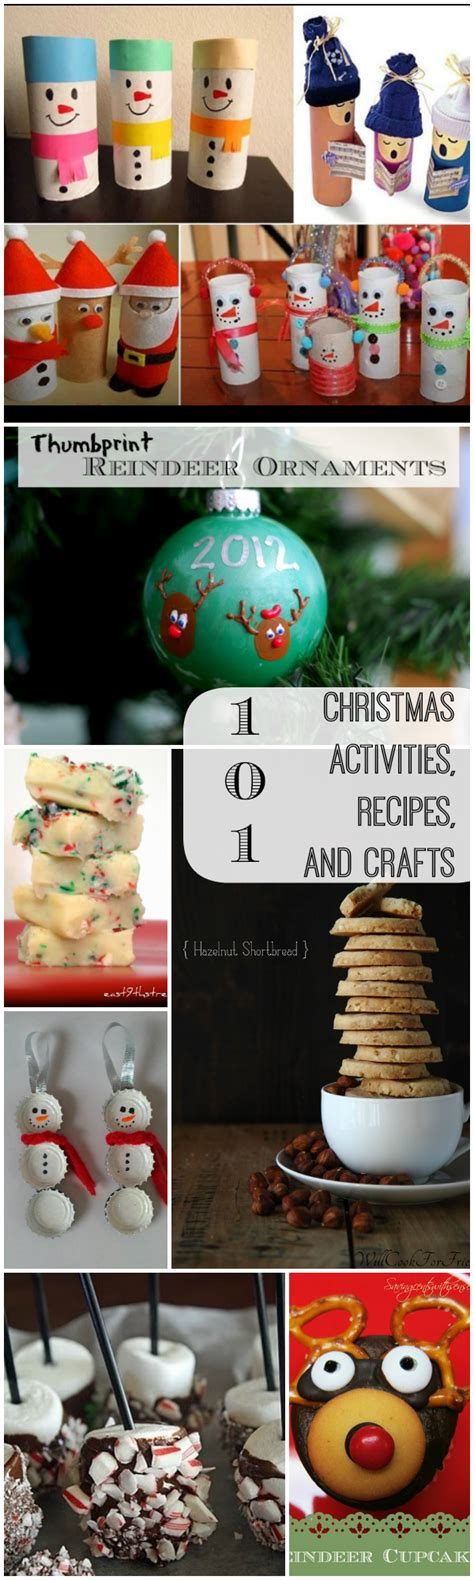 christmas crafts and recipes 101 activities recipes and crafts